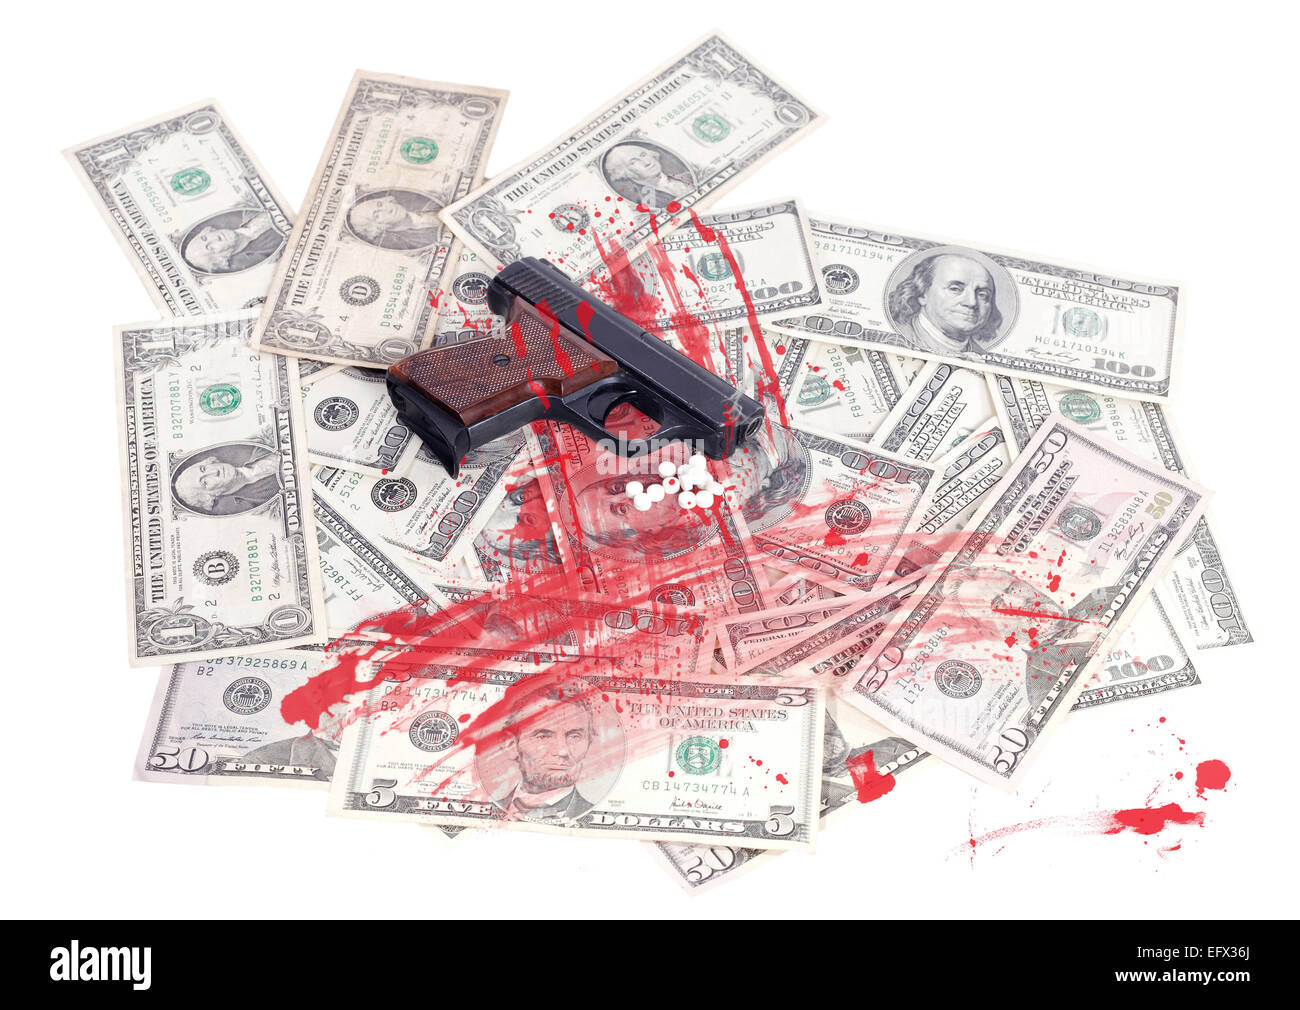 money earned by criminal background - Stock Image